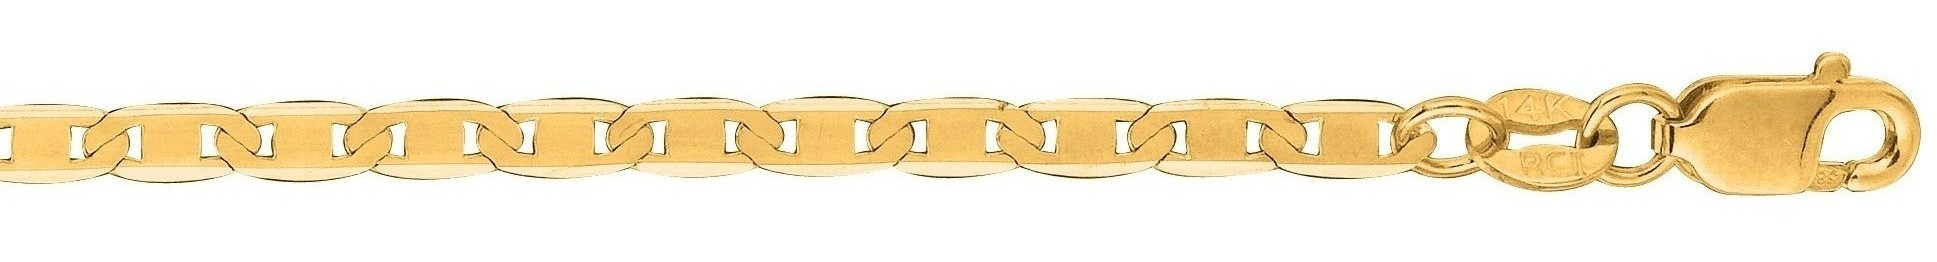 "20"" 10K Yellow Gold 2.30mm (0.09"") Polished Diamond Cut Marina Link Chain w/ Lobster Clasp"